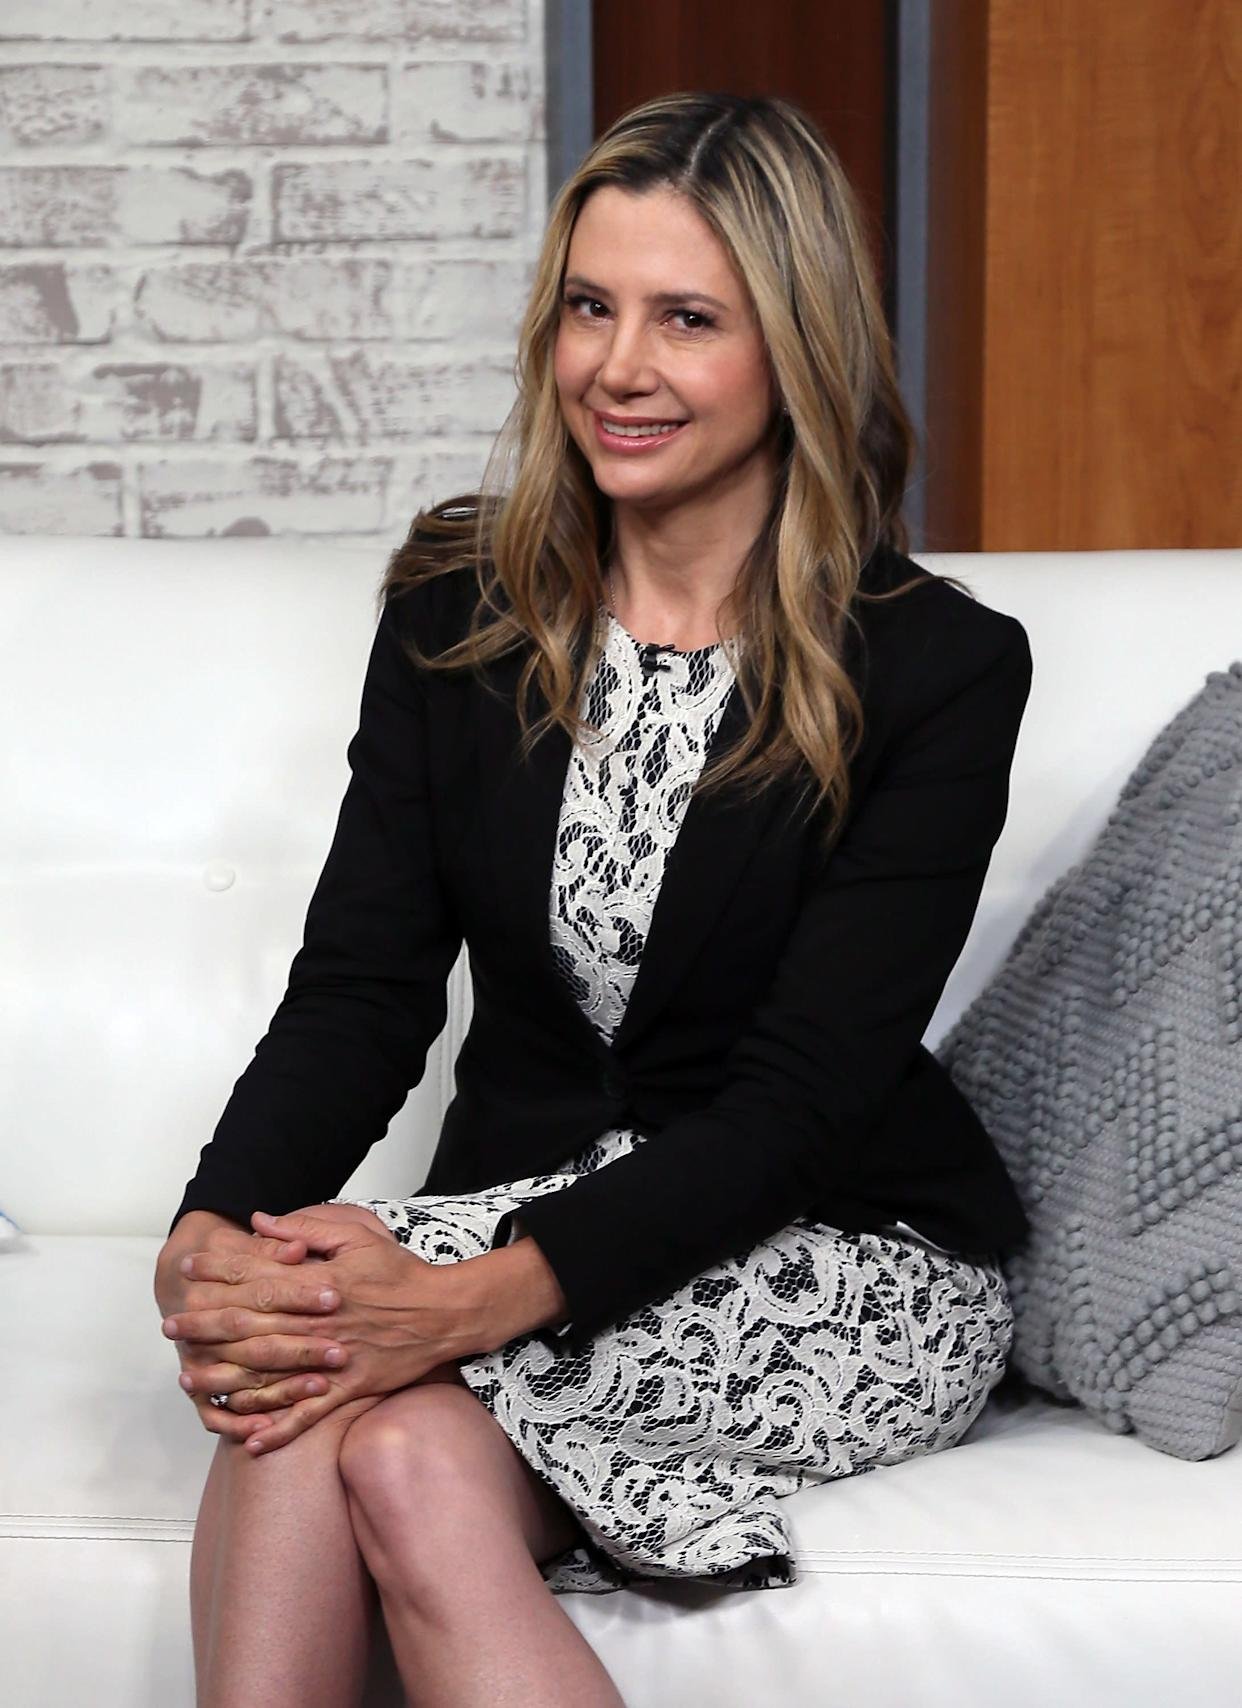 In February 2017, an appeals court decided against Donald Trump's proposed travel ban.<br><br>Actress Mira Sorvino tweeted after court ruling, saying,&amp;nbsp;&amp;ldquo;Thank God!!And TY to all the judges, and lawyers and citizens who protested! This is our America! #nomuslimban #lovenothatemakesamericagreat.&amp;rdquo;